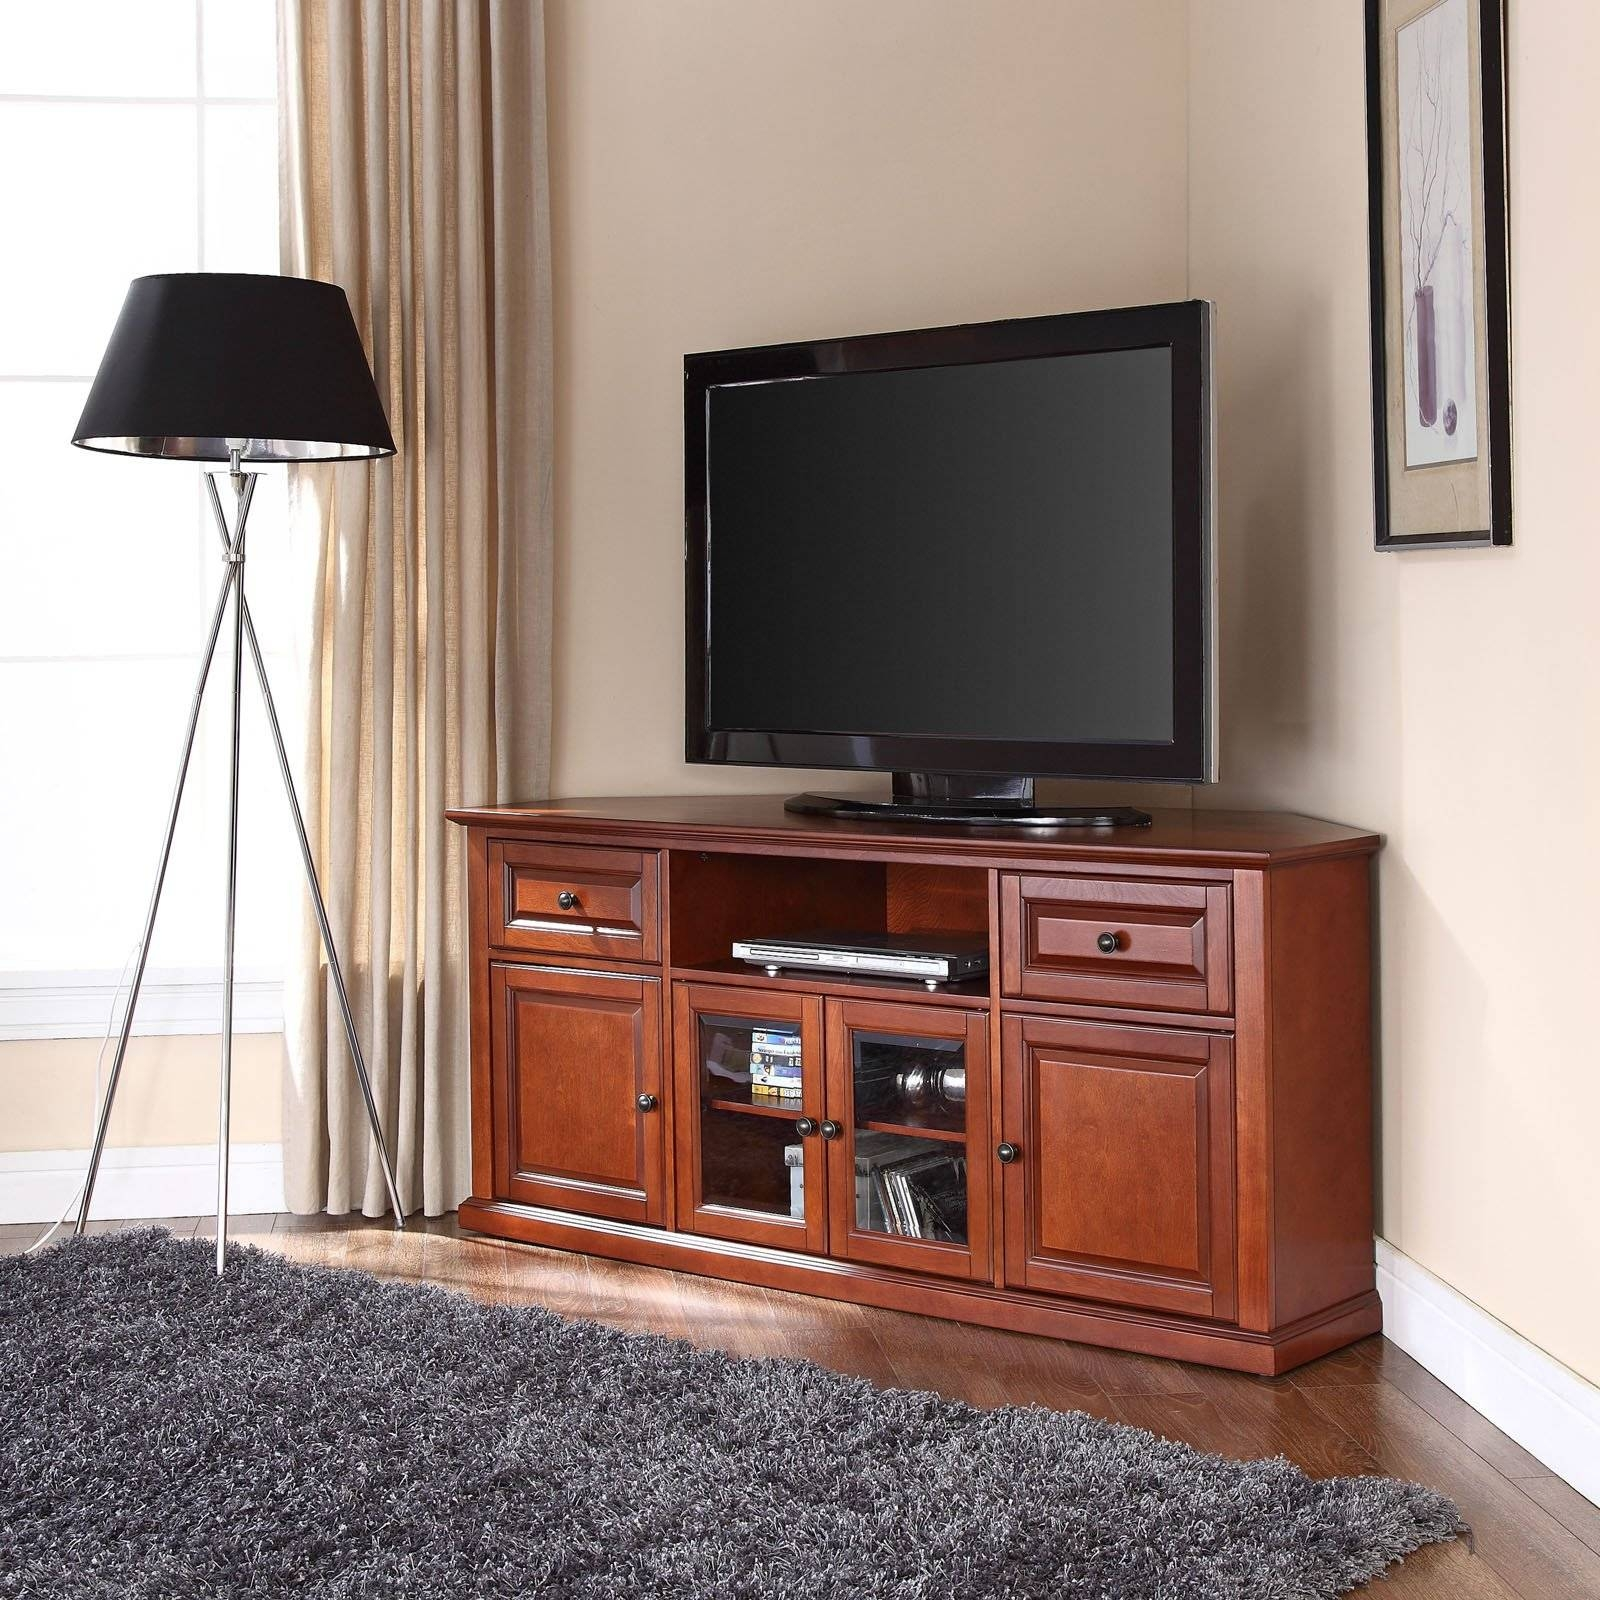 "Crosley Furniture Corner Tv Stand For Tvs Up To 60"" - Walmart inside Corner Tv Stands (Image 5 of 15)"